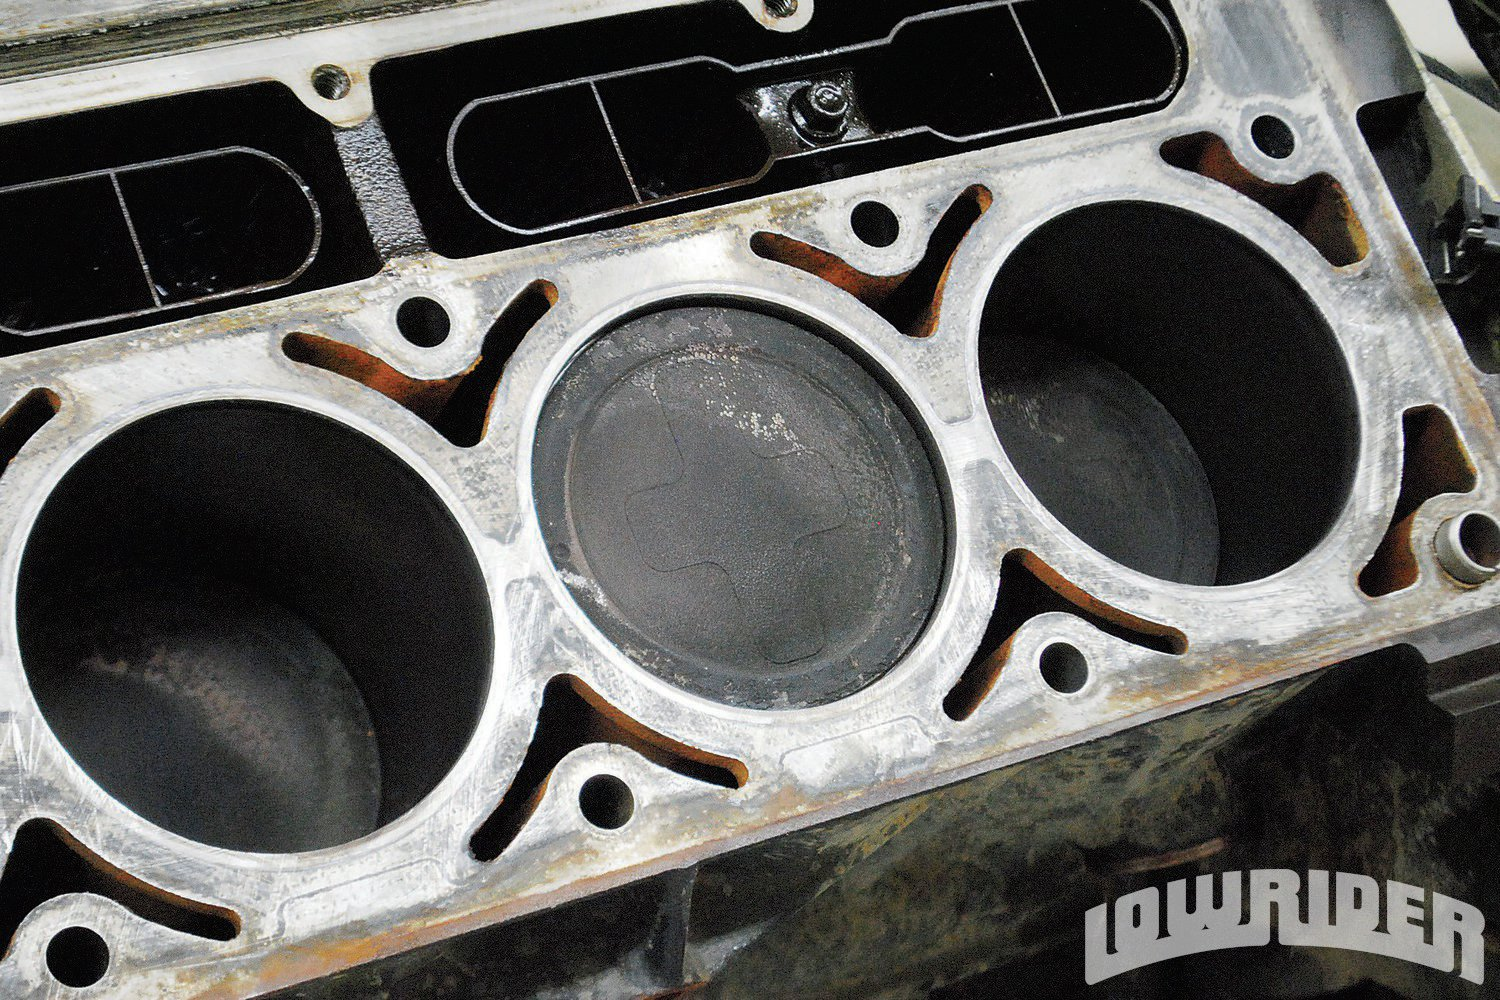 <strong>5</strong>. By contrast, the 5.3L came equipped with a dished piston. A common upgrade is to swap the flat-top 4.8L piston into the 5.3 to raise the static compression. The 5.3L H.O. version came equipped with just such an upgrade from the factory.